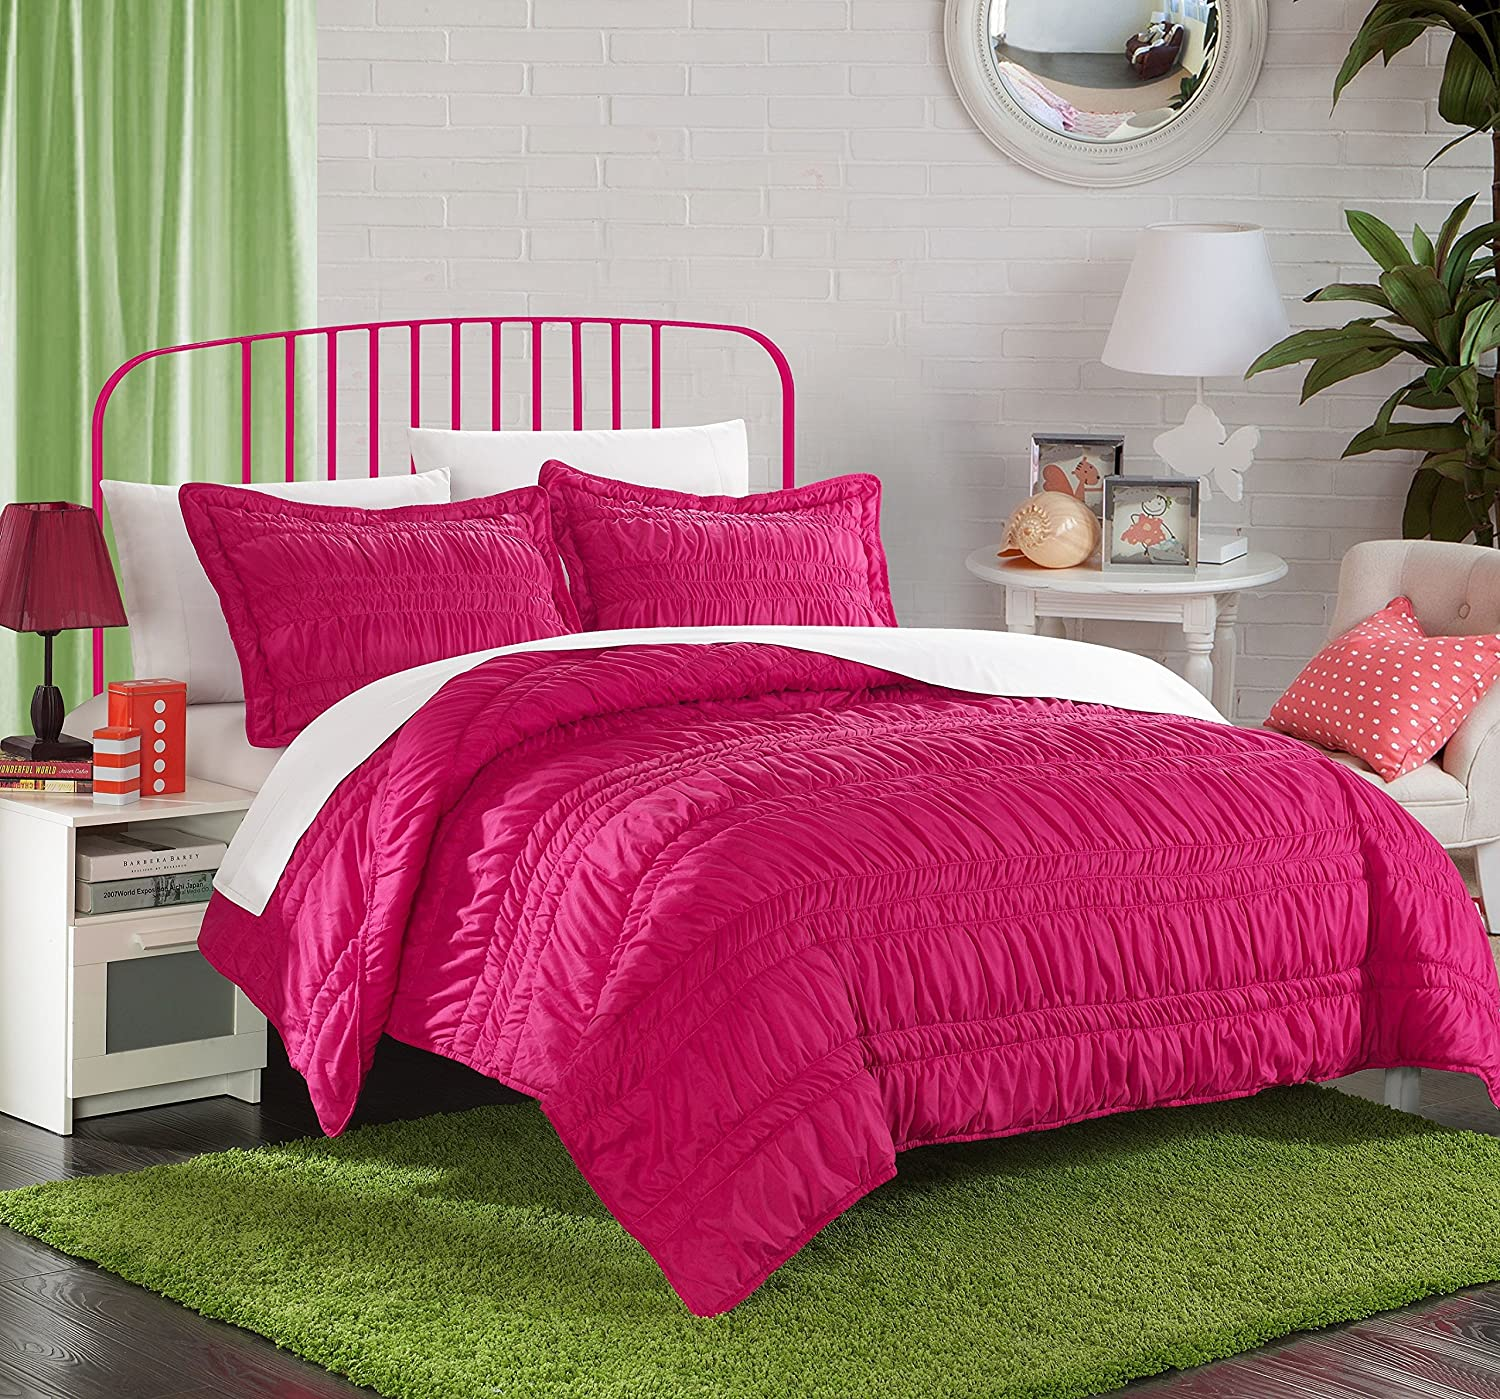 Chic Home 3 Piece Dreamer Super Soft Microfiber Pleated Ruffled Technique Quilt Set, Full, Fuchsia